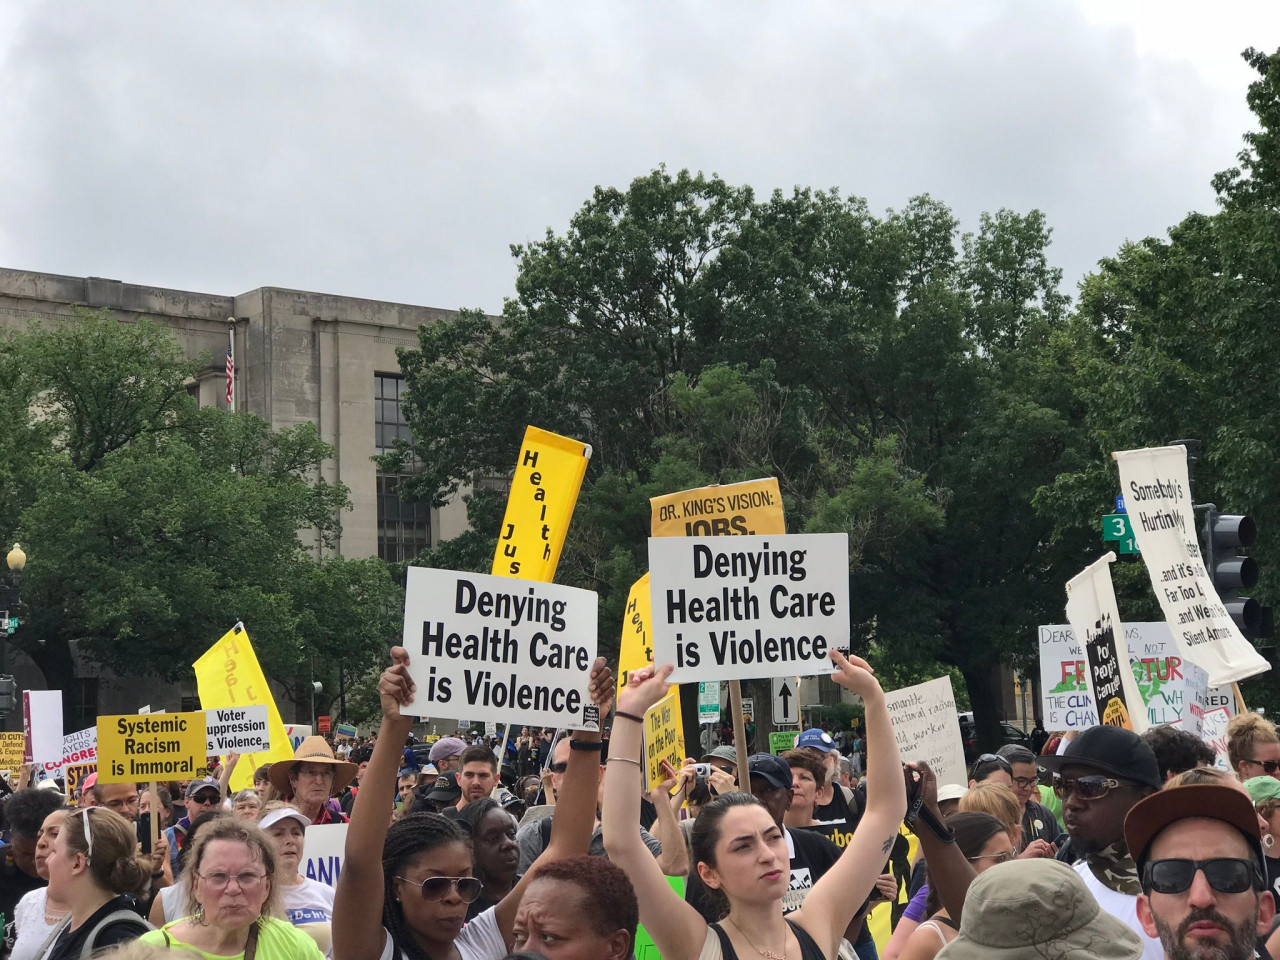 """Poor People's Campaign - Denying <a class=""""bx-tag"""" rel=""""tag"""" href=""""https://wethepeople.care/page/view-channel-profile?id=451""""><s>#</s><b>healthcare</b></a> is Violence"""